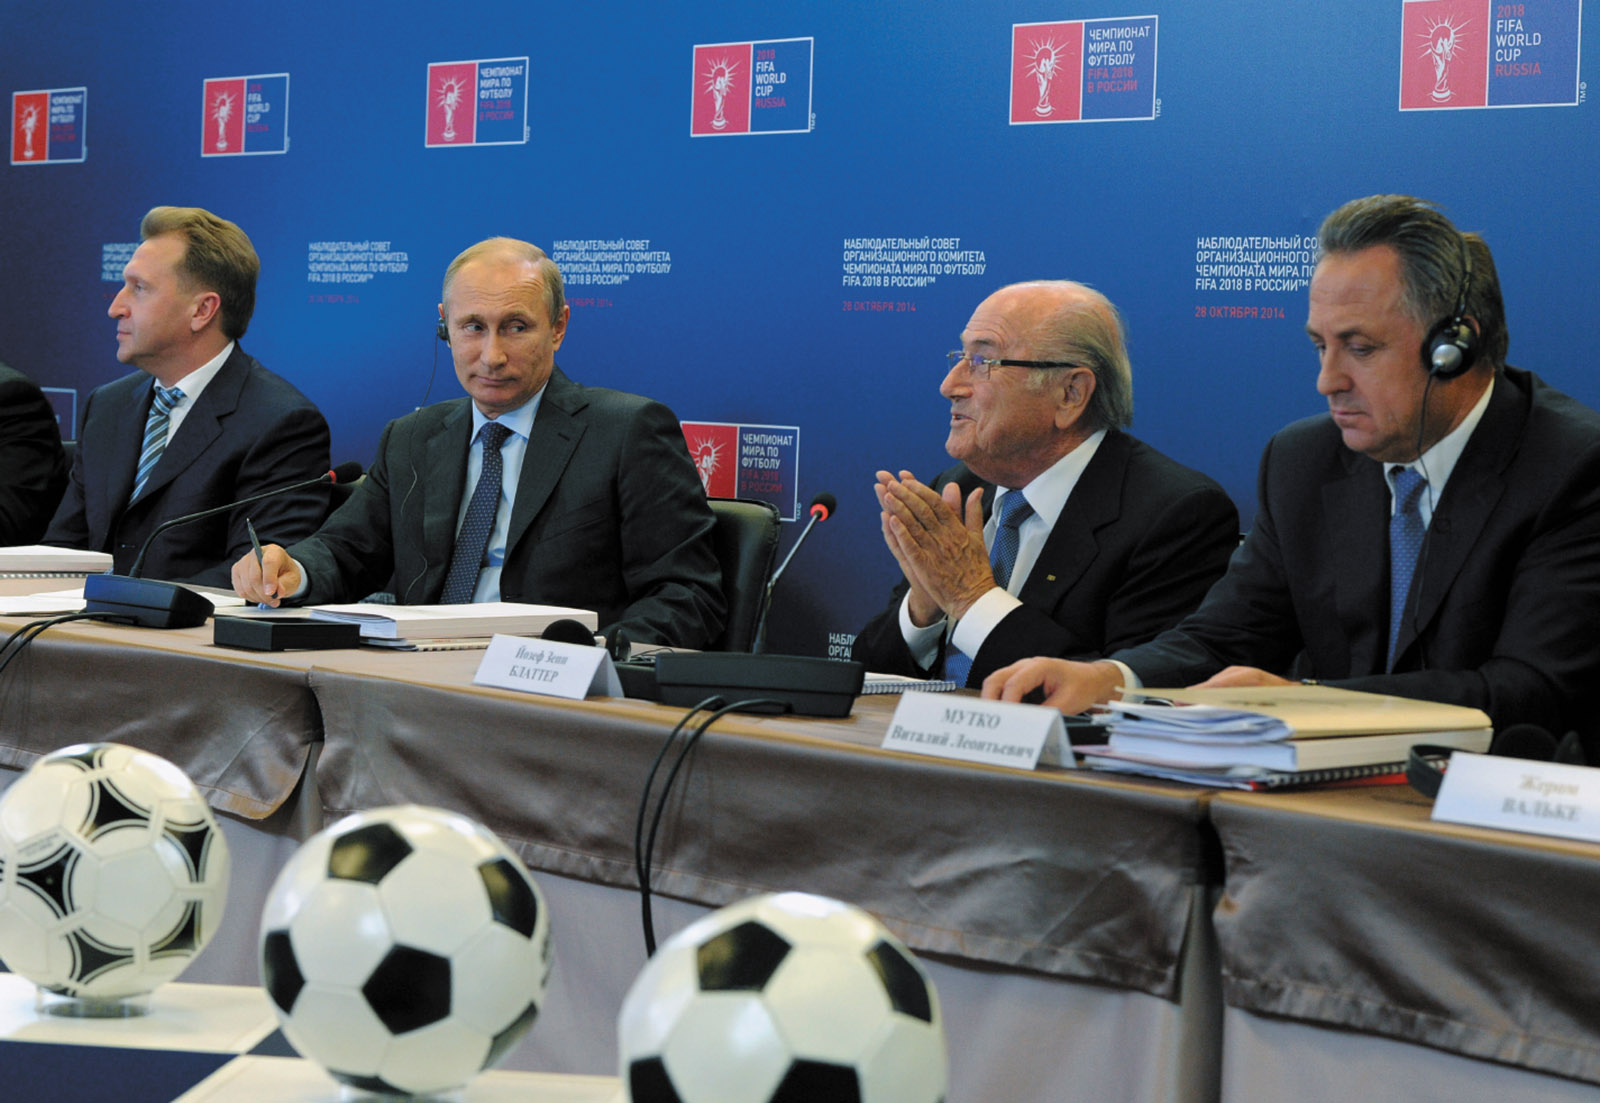 Soccer's Culture of Corruption